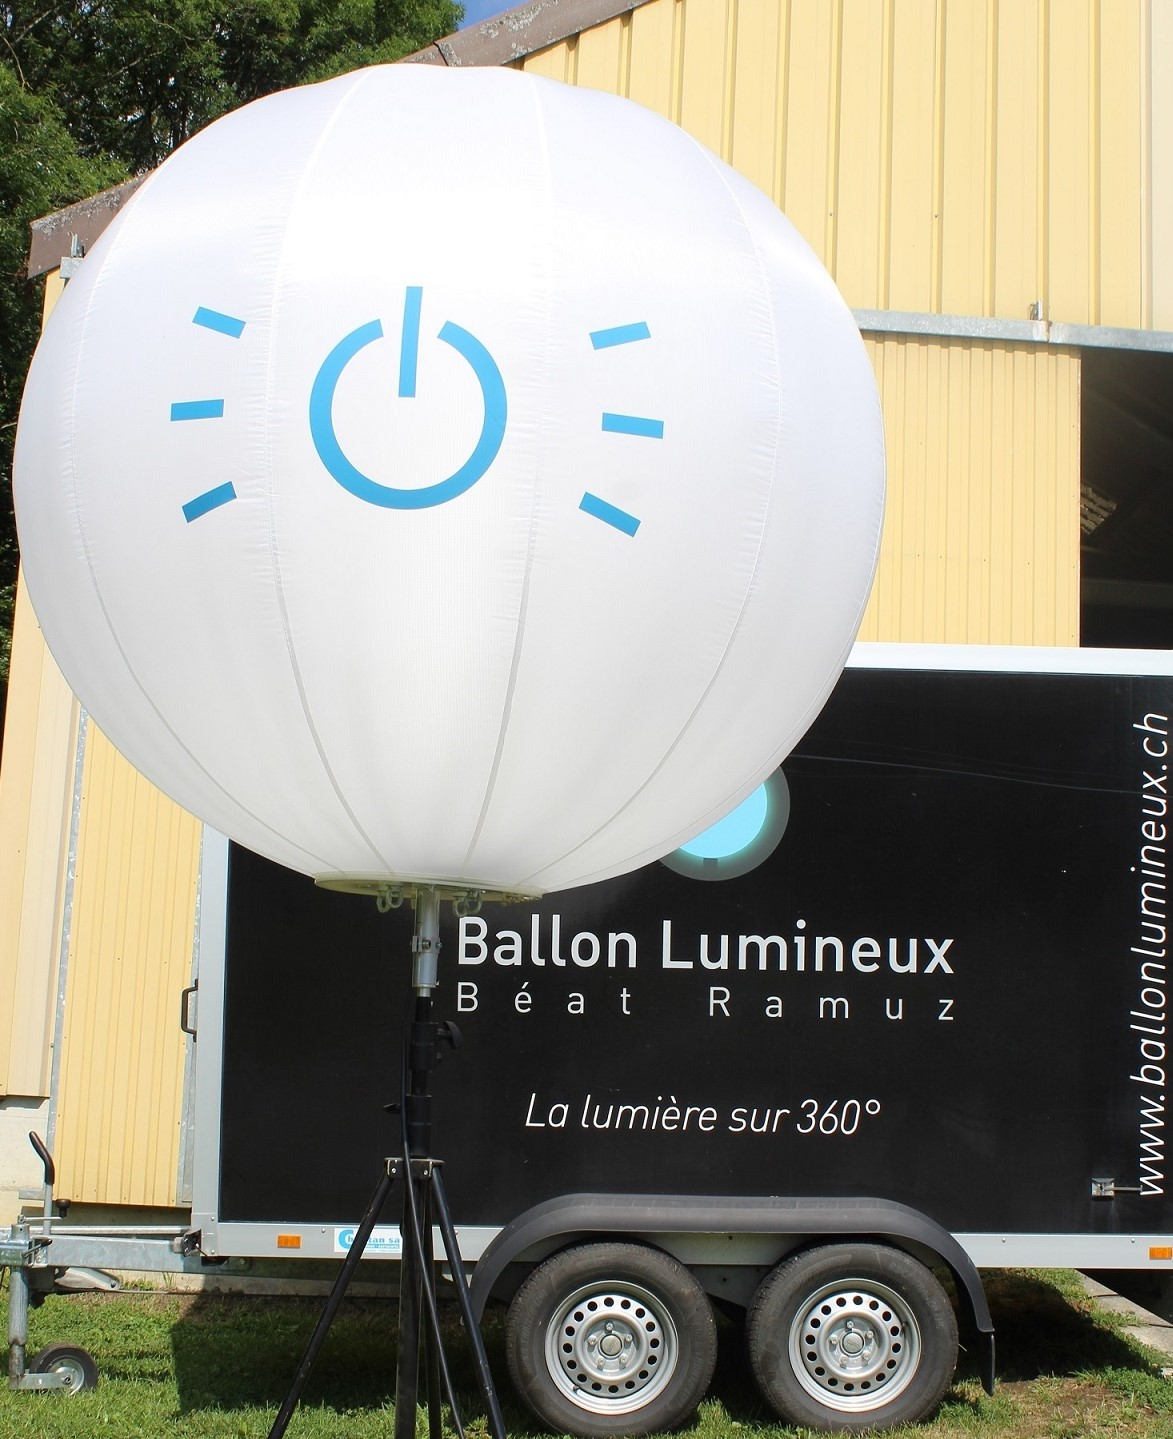 Ballon Lumineux - Electr-on